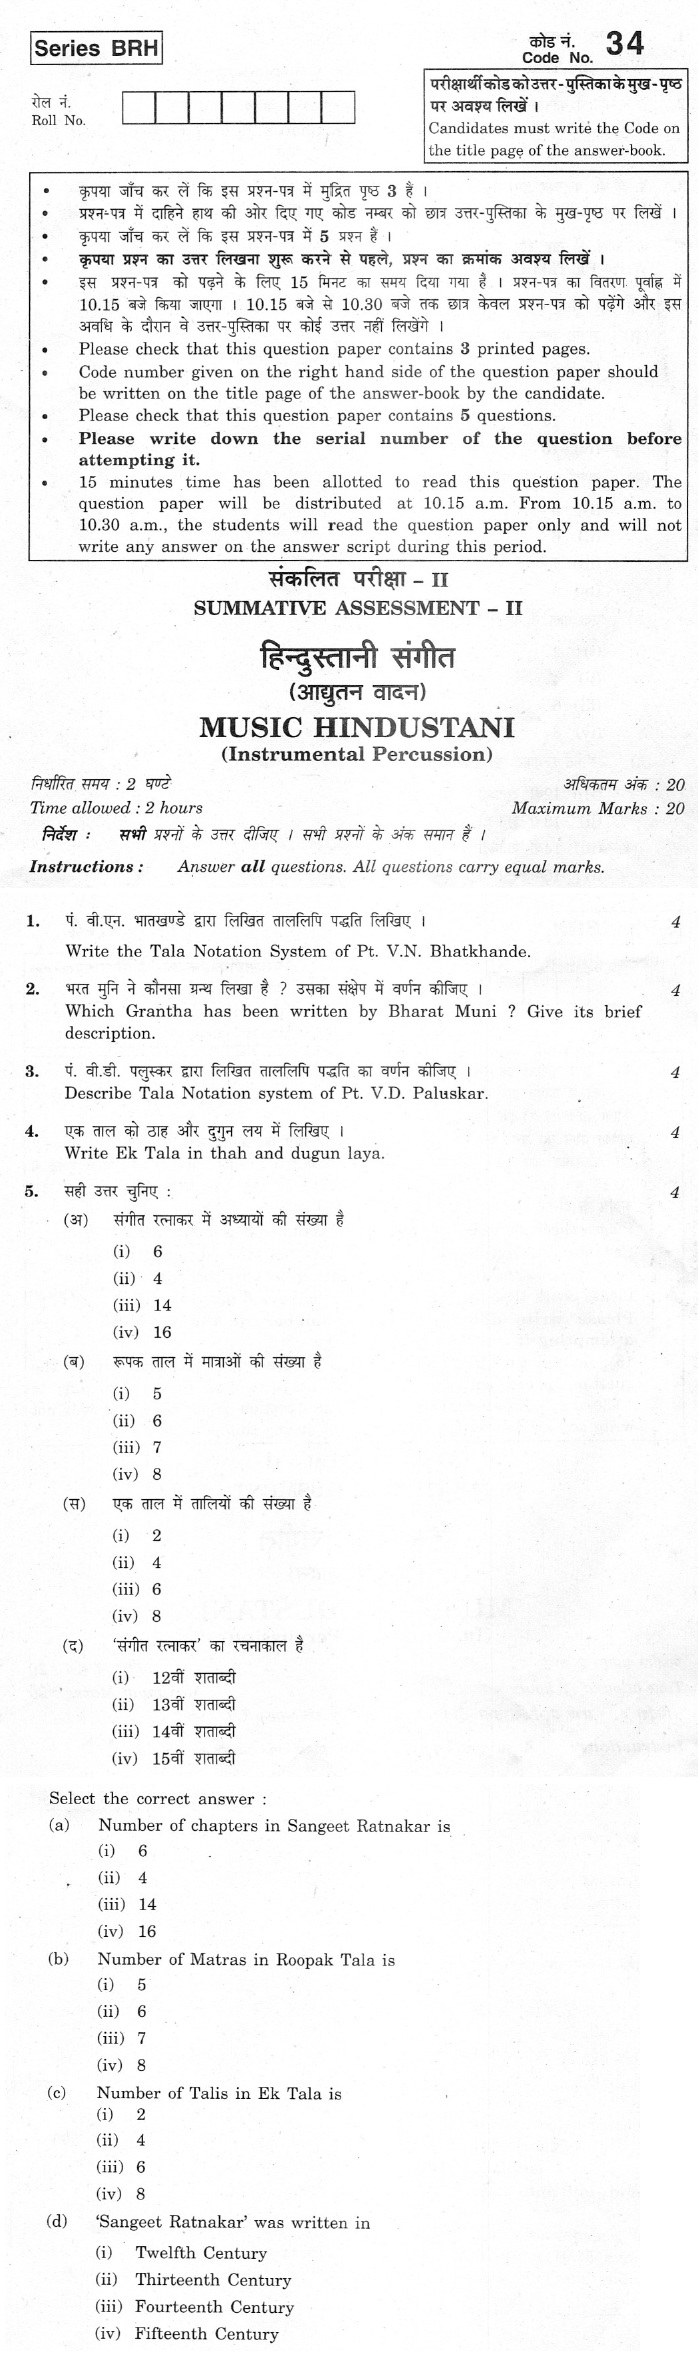 CBSE Class X Previous Year Question Papers 2012 Music Hindustani(Instrumental Percussion)